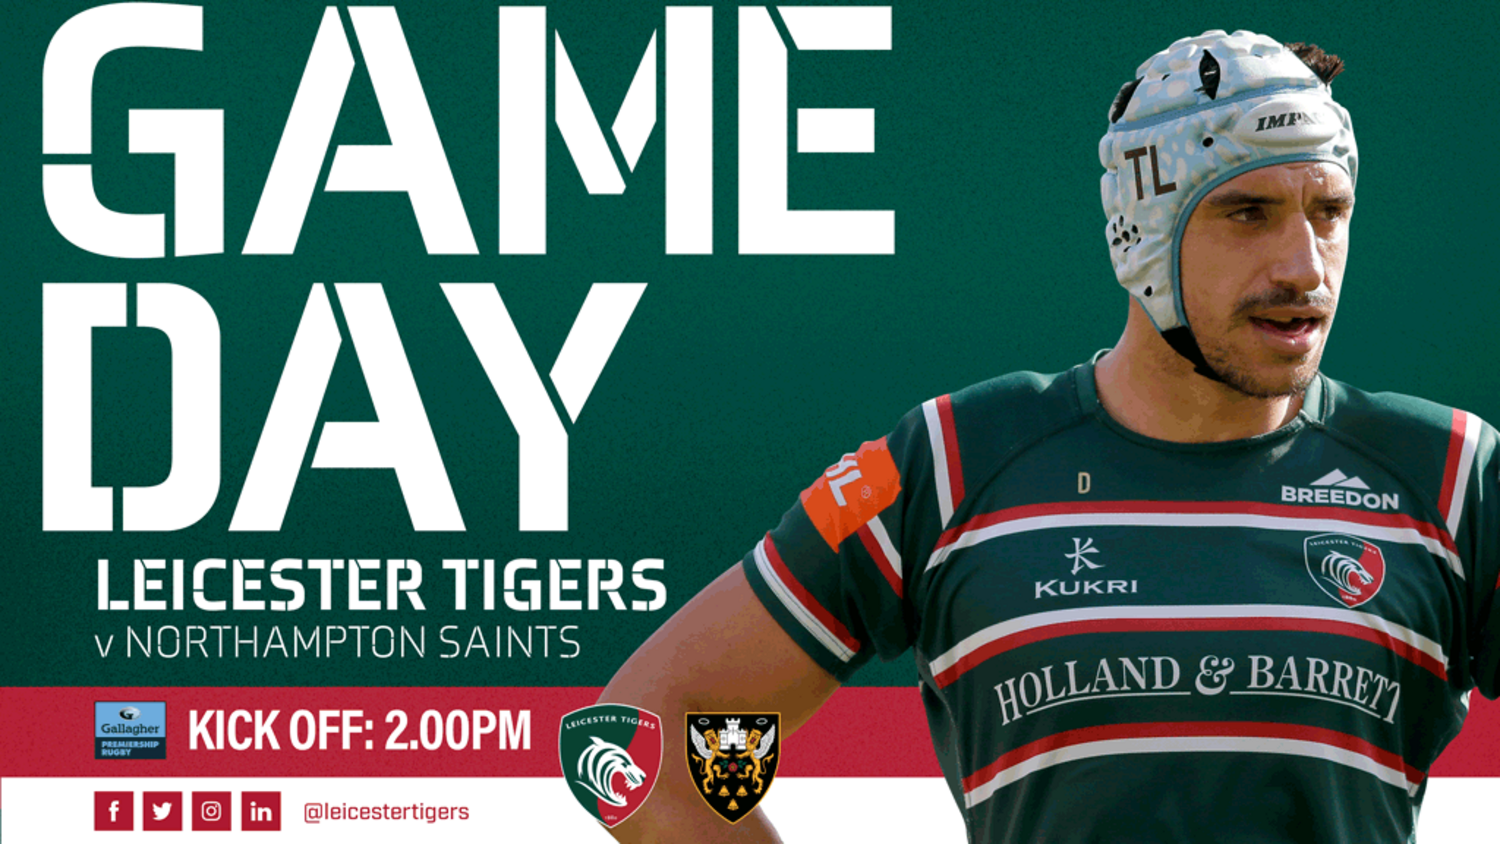 tigers v saints gp20 130920 game day.png